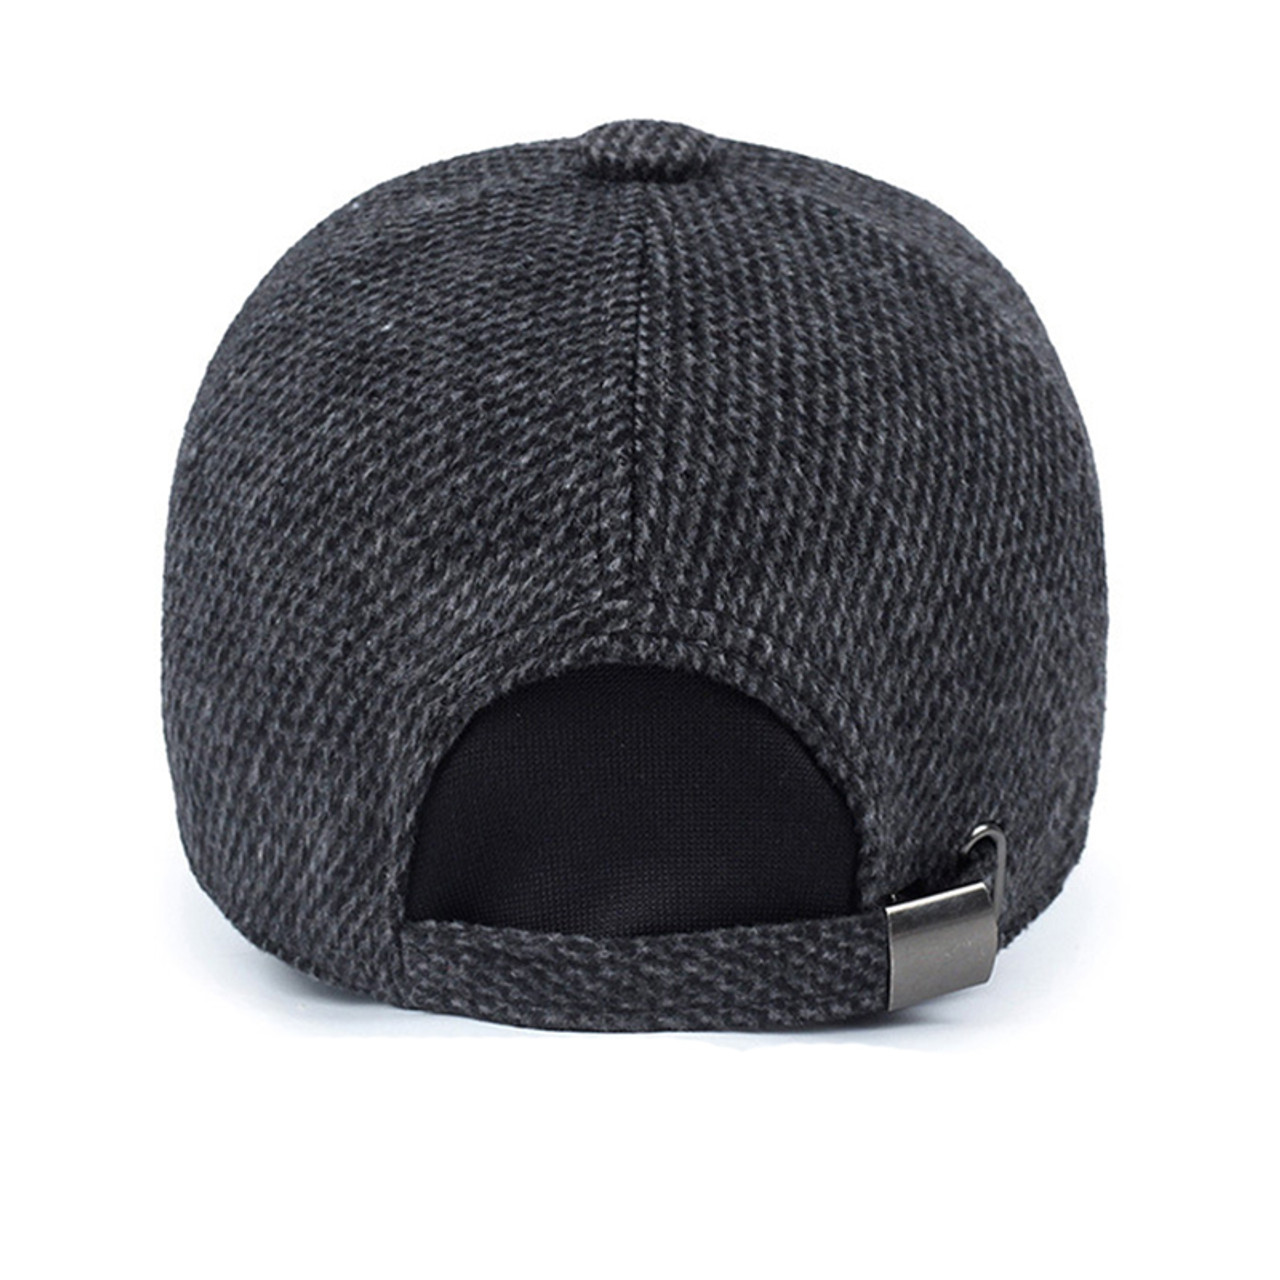 ... PRETTY KITTY 2018 Thickened Baseball Cap With Ears Men S Cotton Hat  Snapback Hats Ear Flaps For ... 6ef48dce7fd3